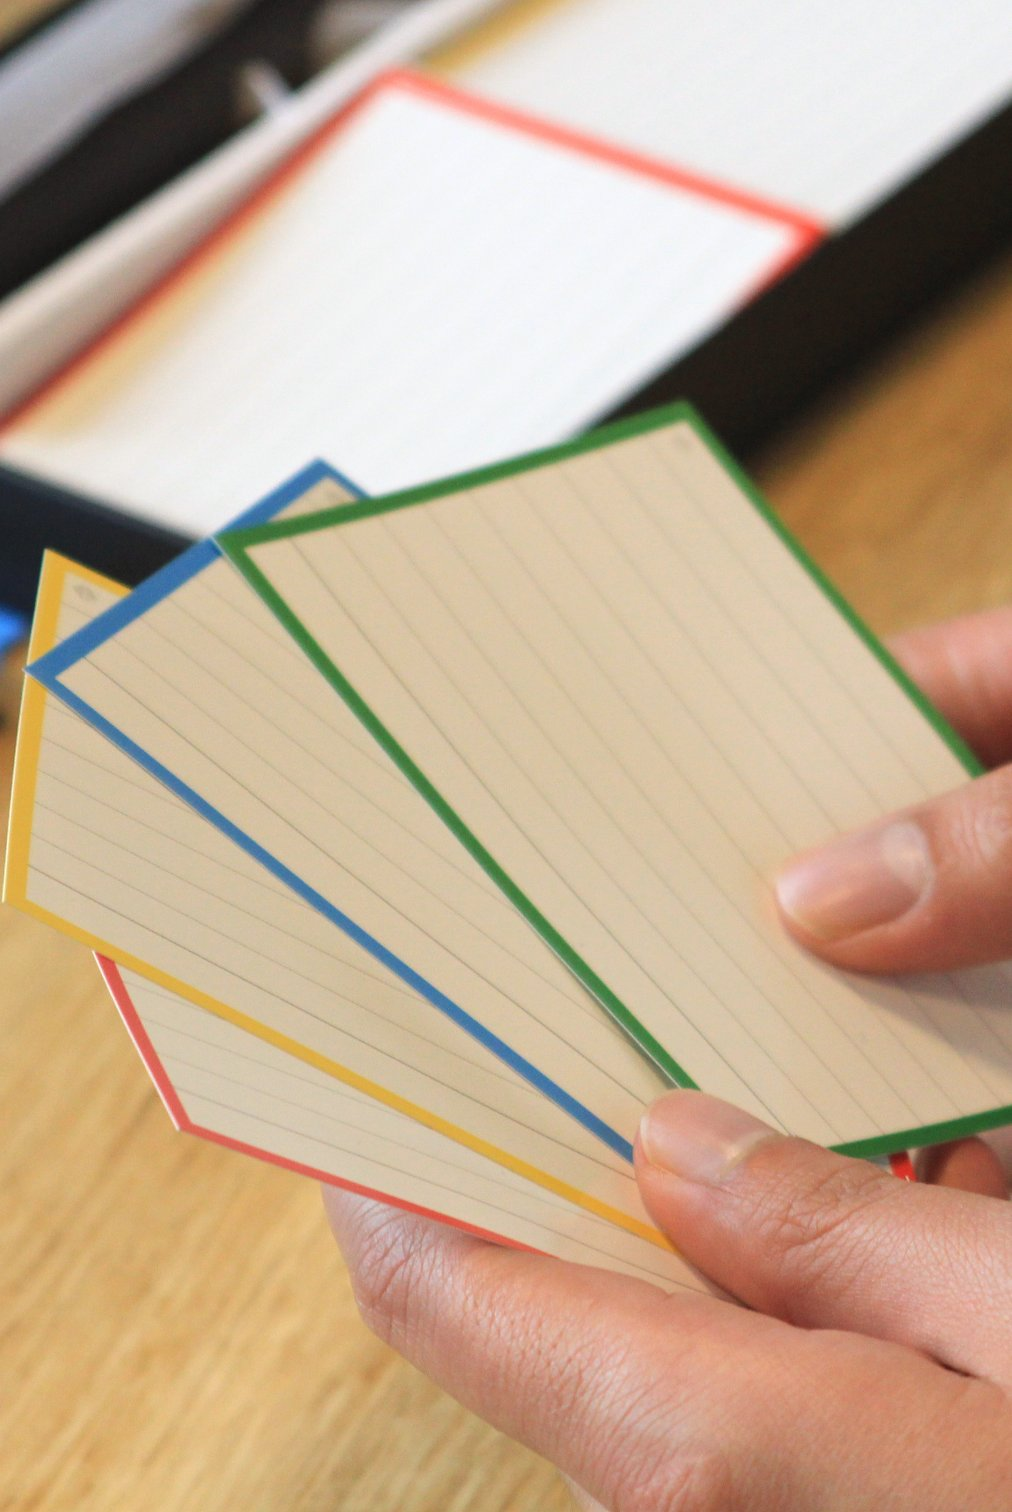 Presenting with flashcards